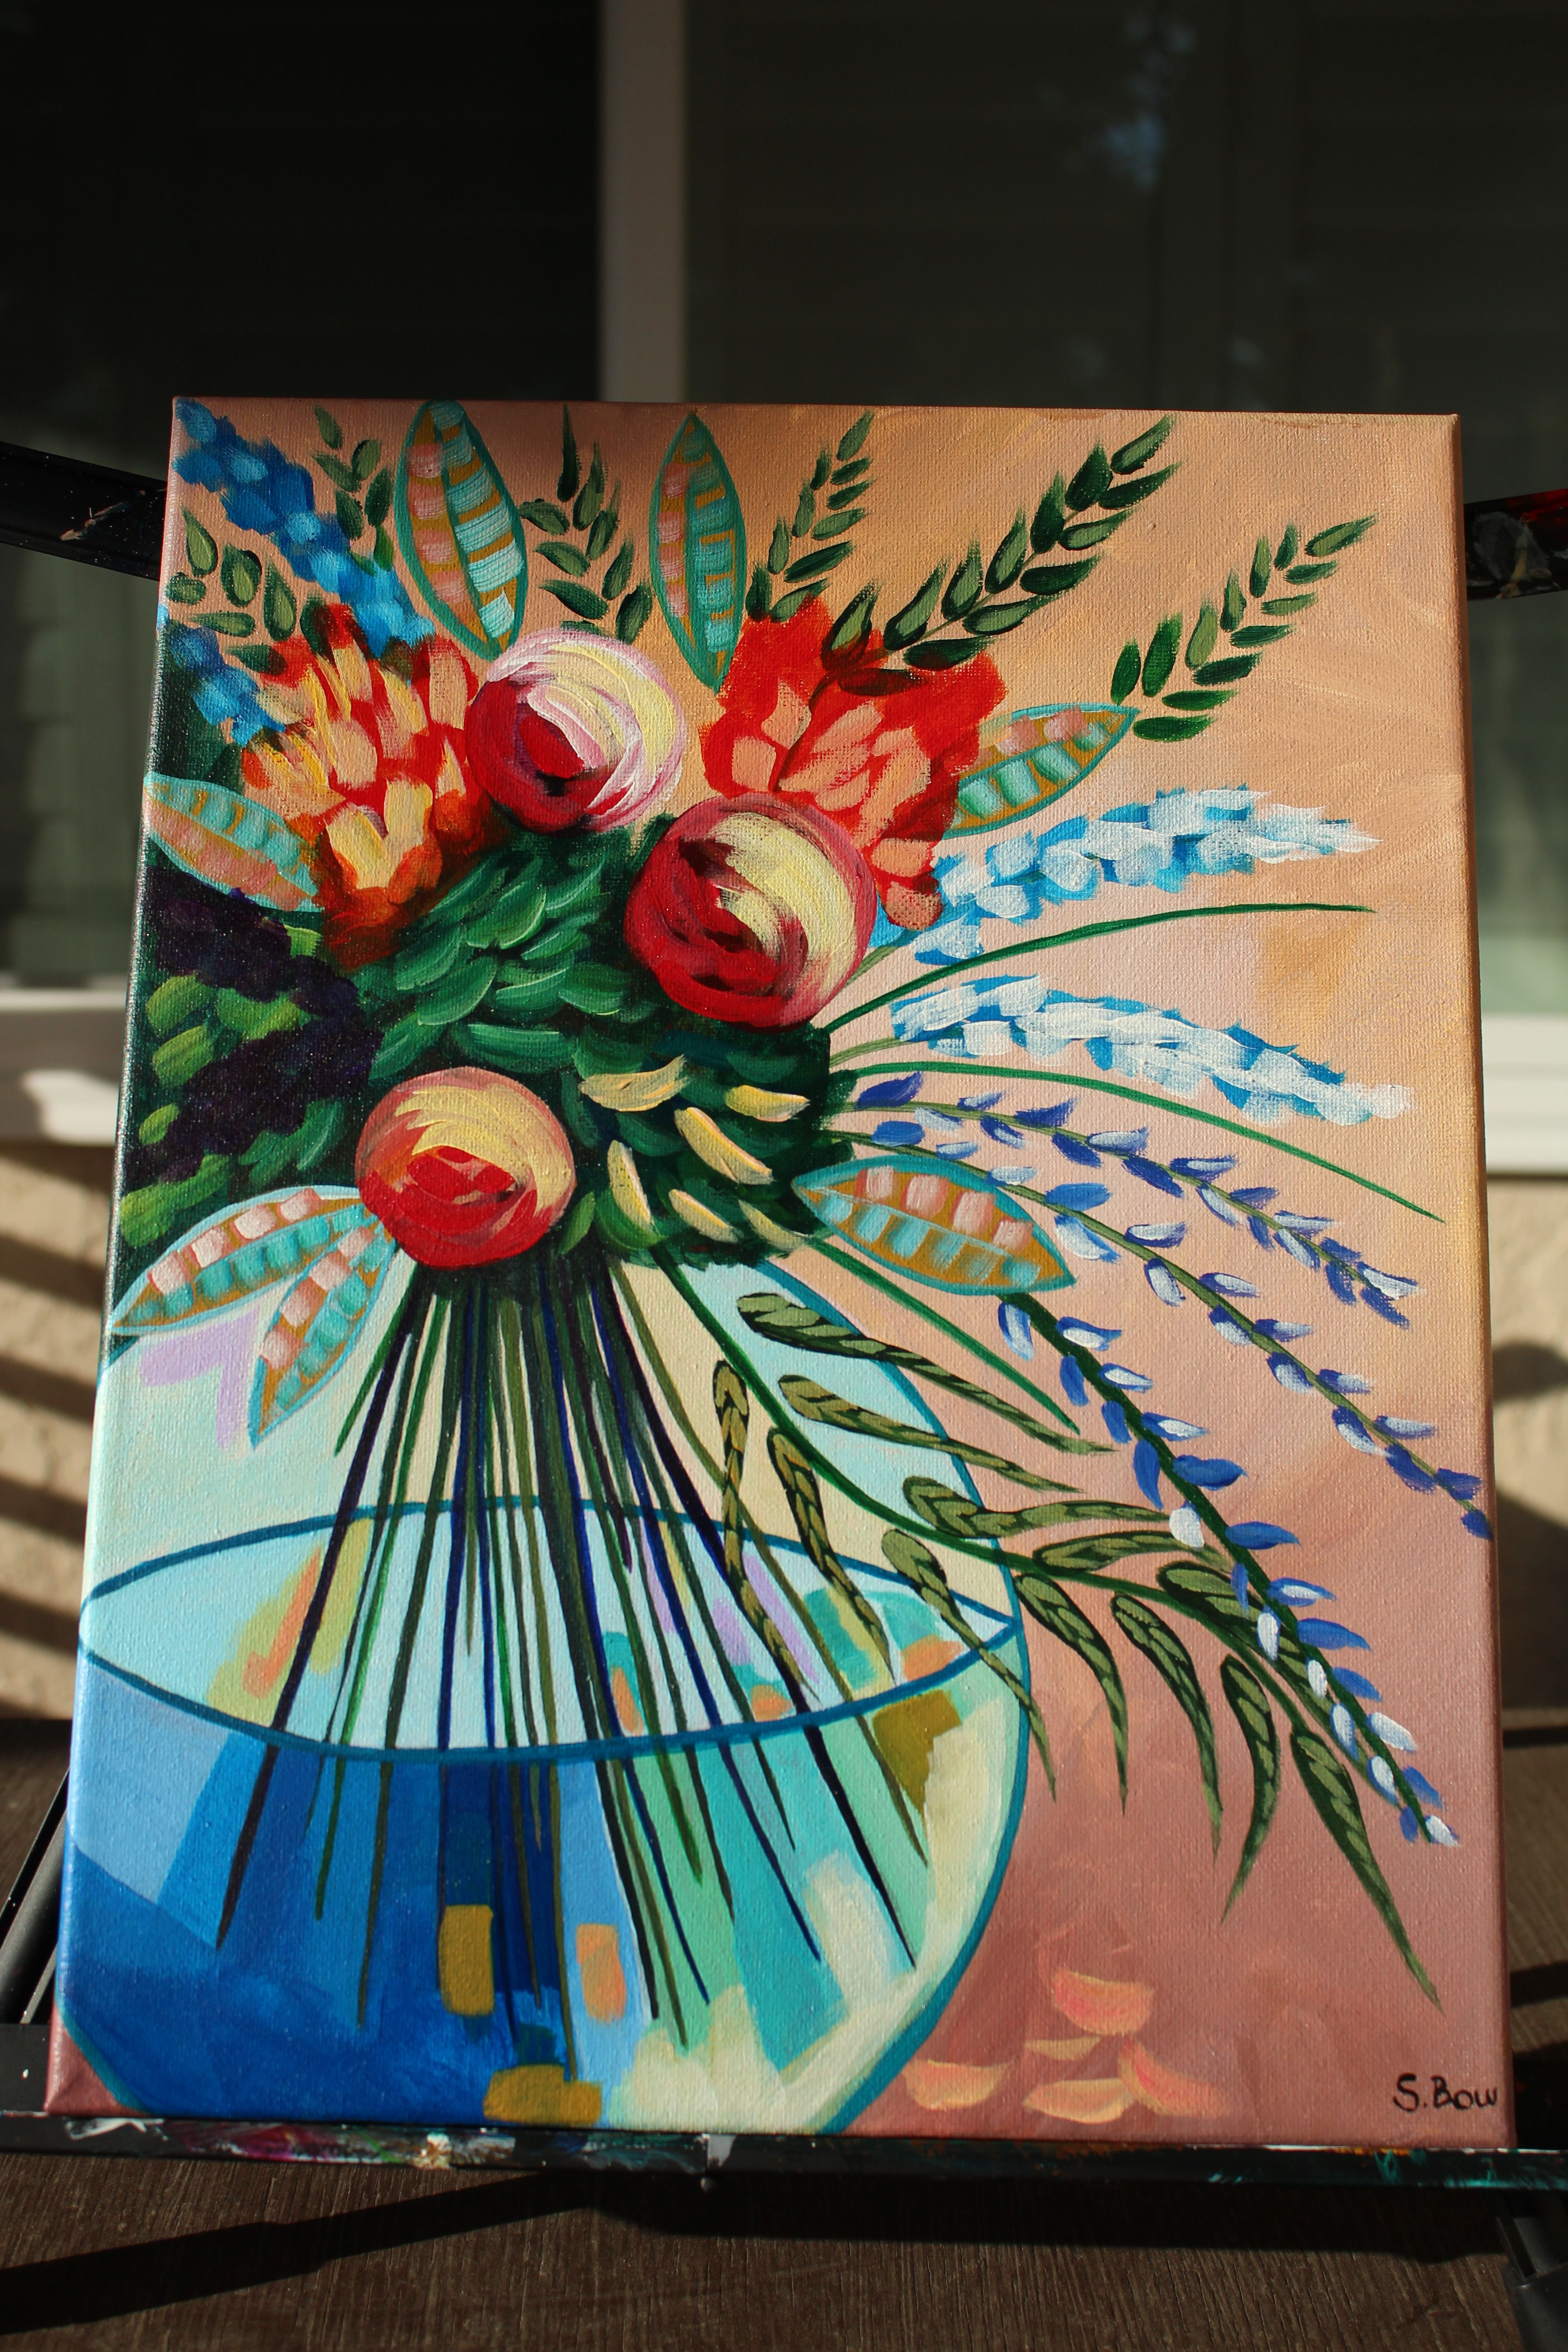 Painting Lost Track Flowers In Vase Inspired By